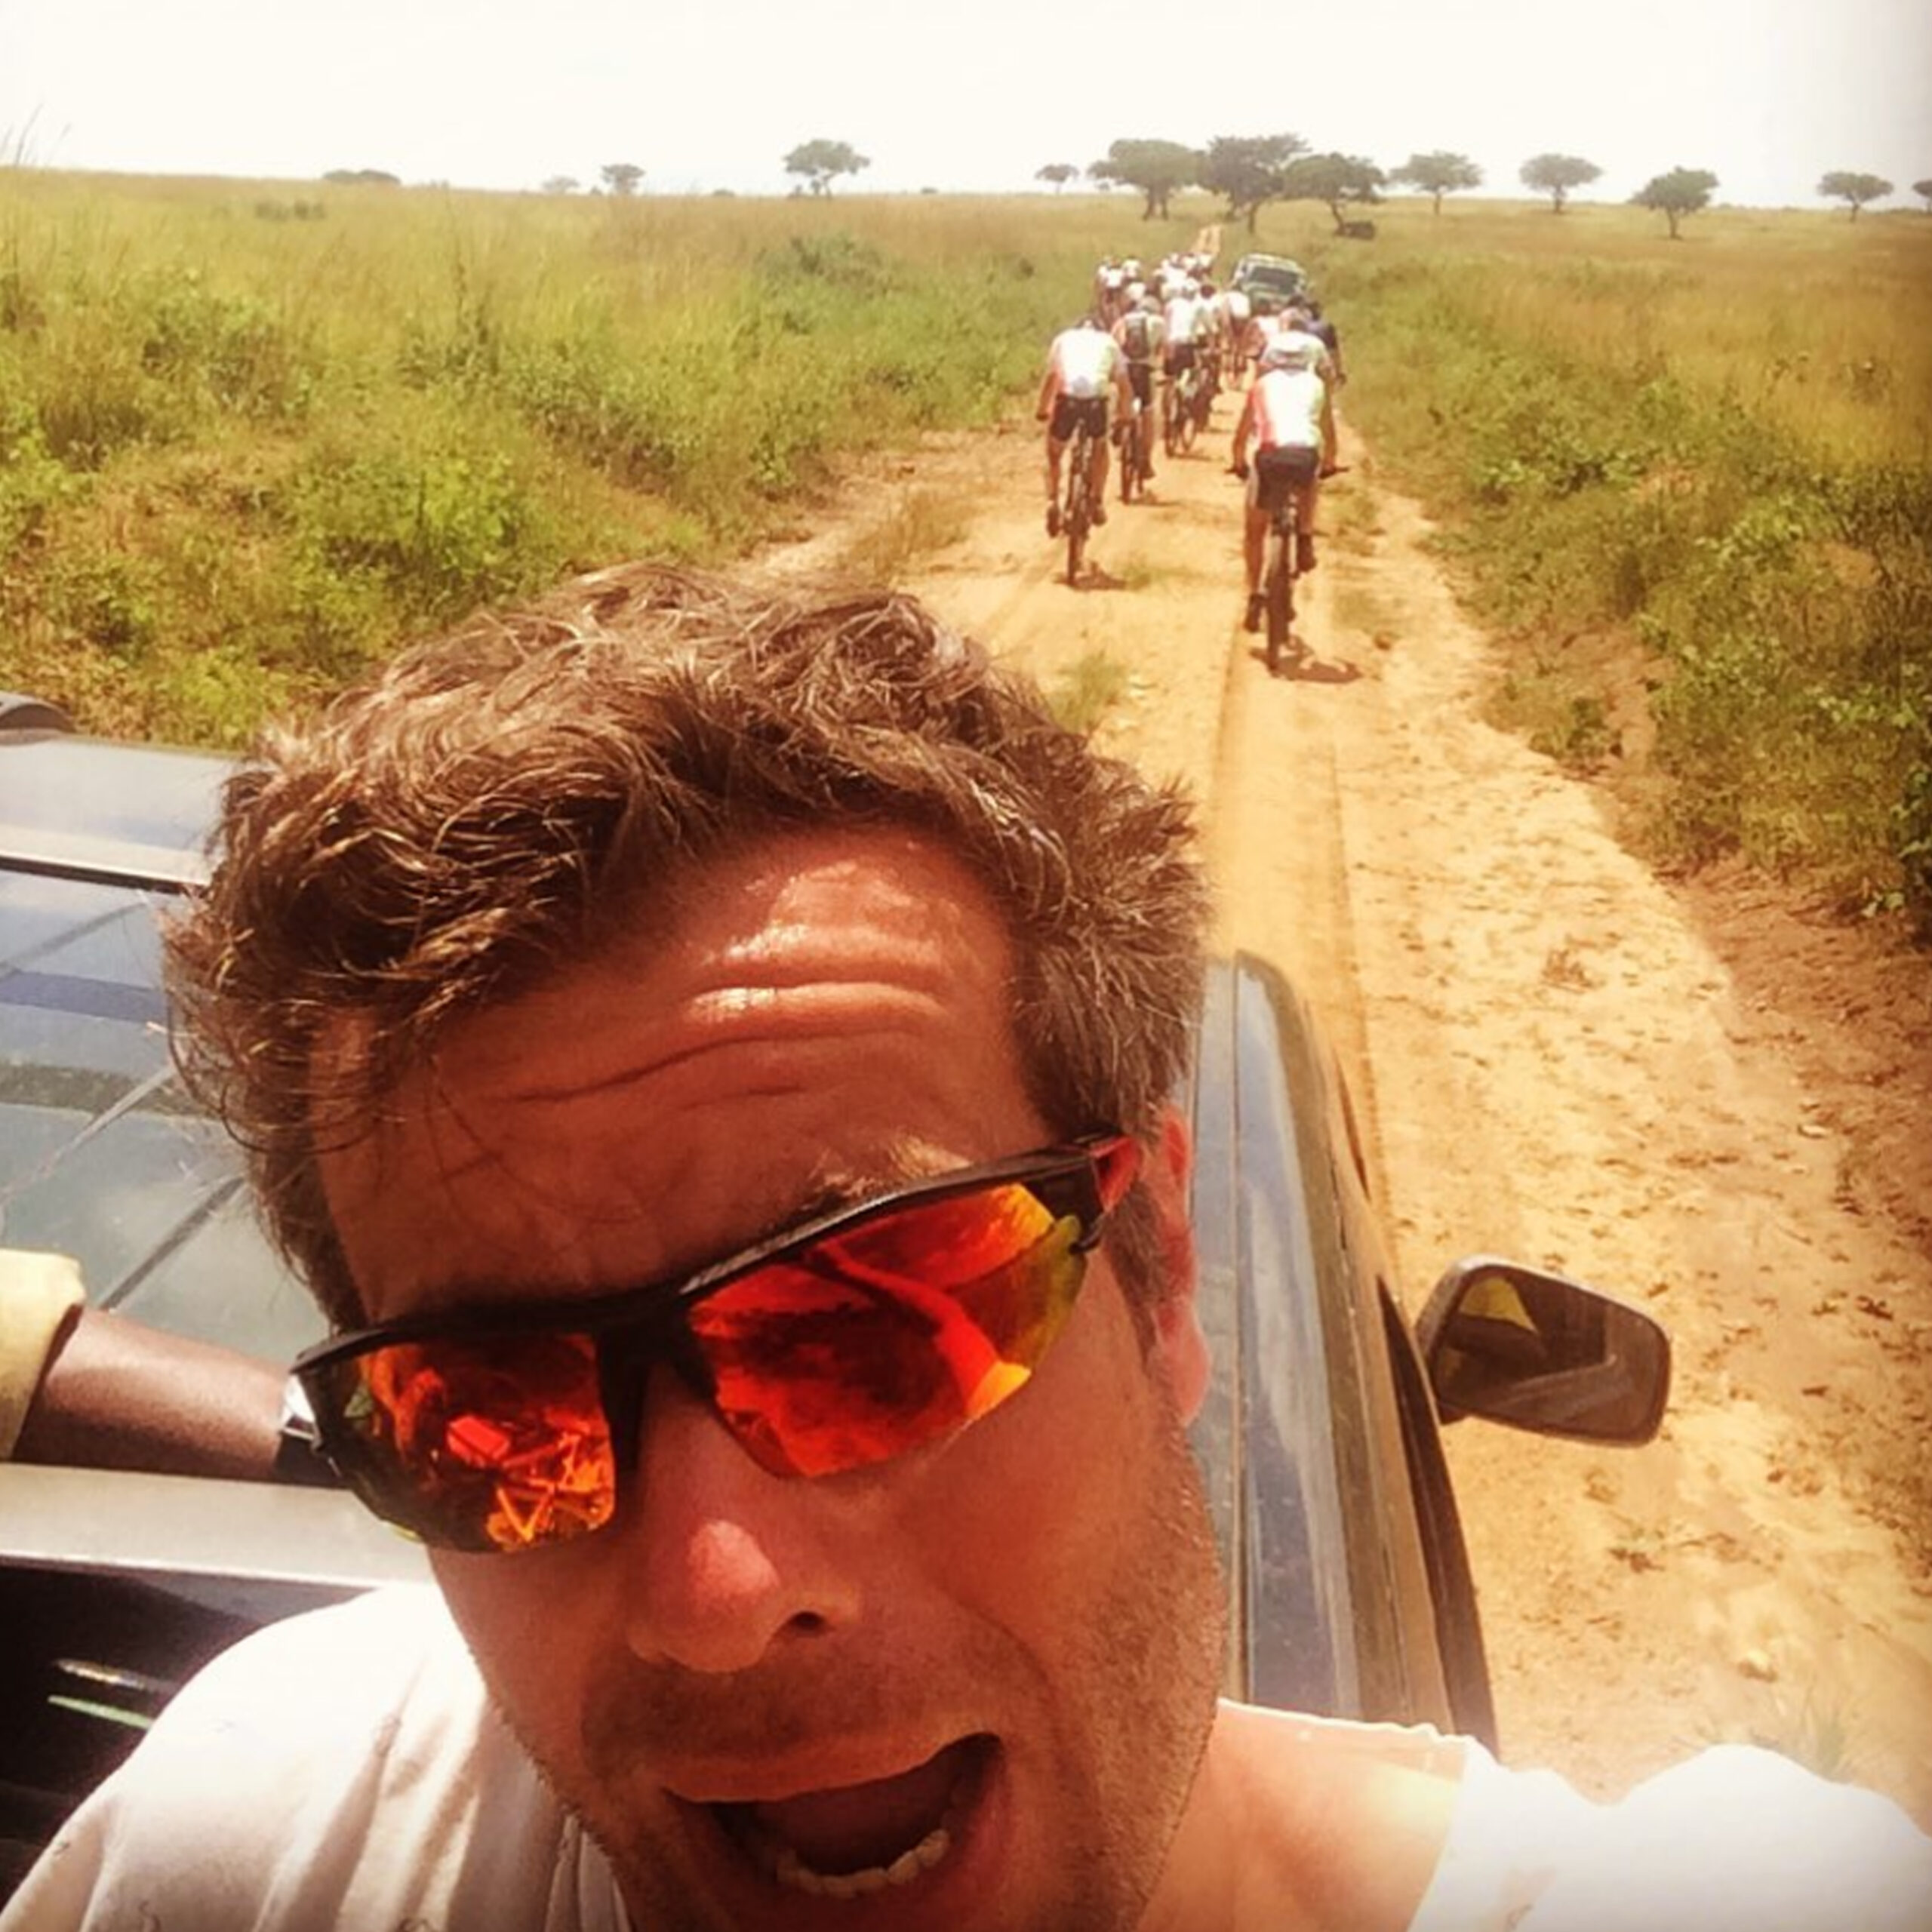 Red-Dirt-Uganda-Africa-Cycling-Adventure-Staff-Thies